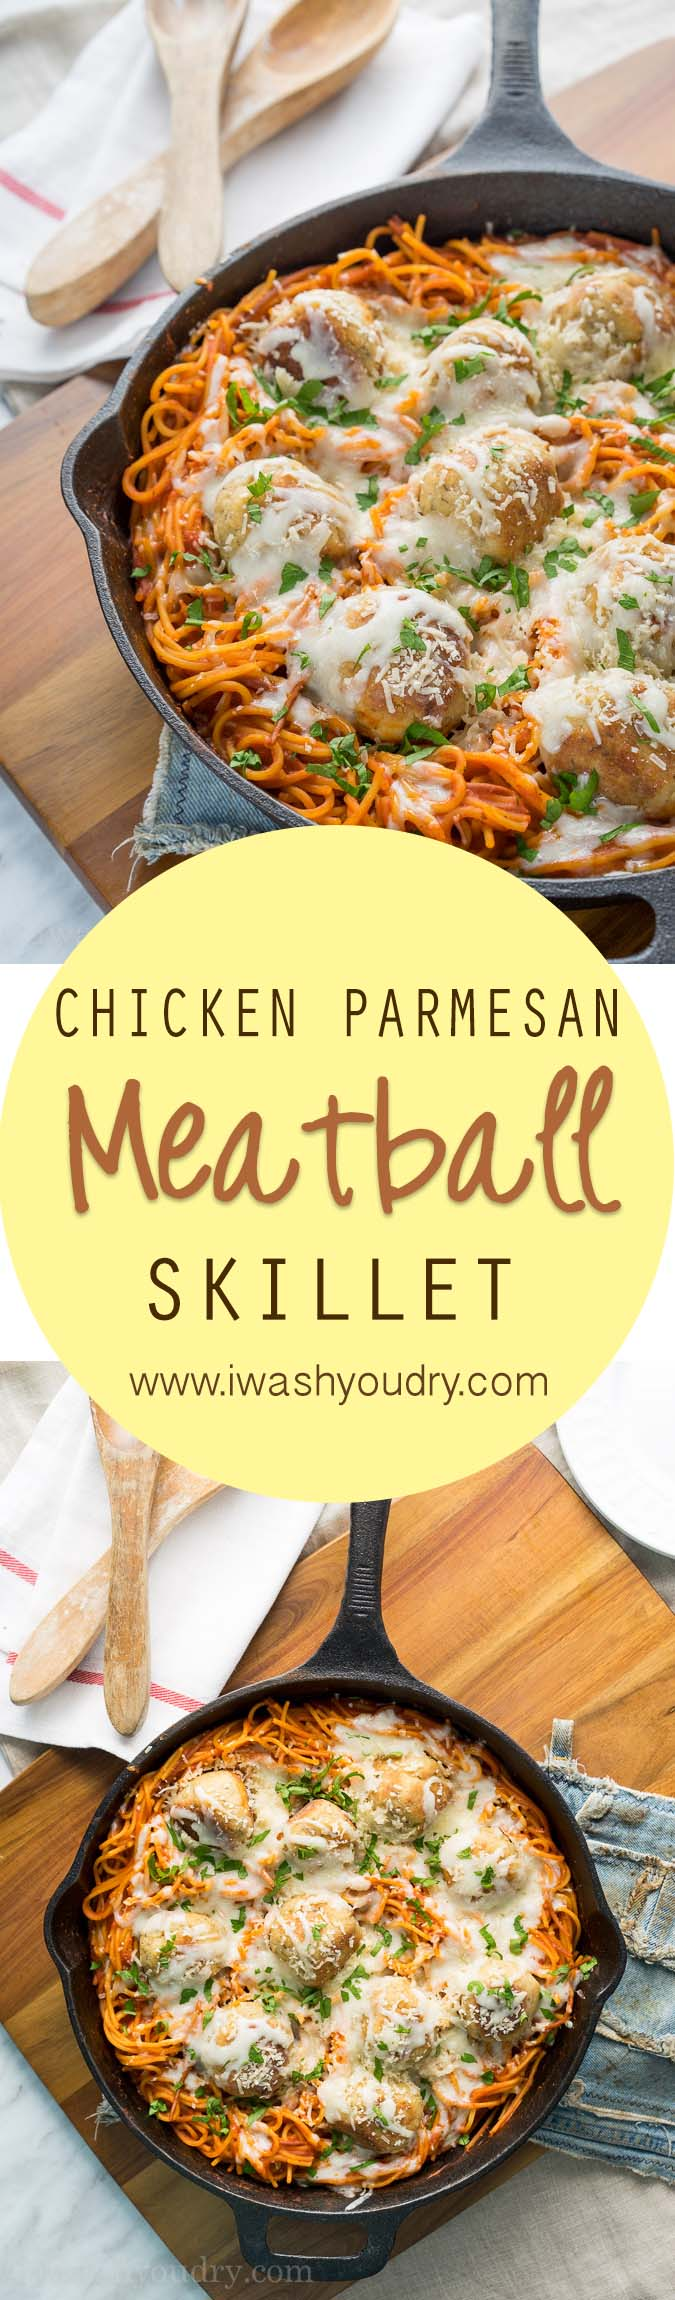 Such a fun twist on the classic! This skillet of chicken and parmesan dumplings only uses one skillet for the entire dish! Even the pasta is cooked there!